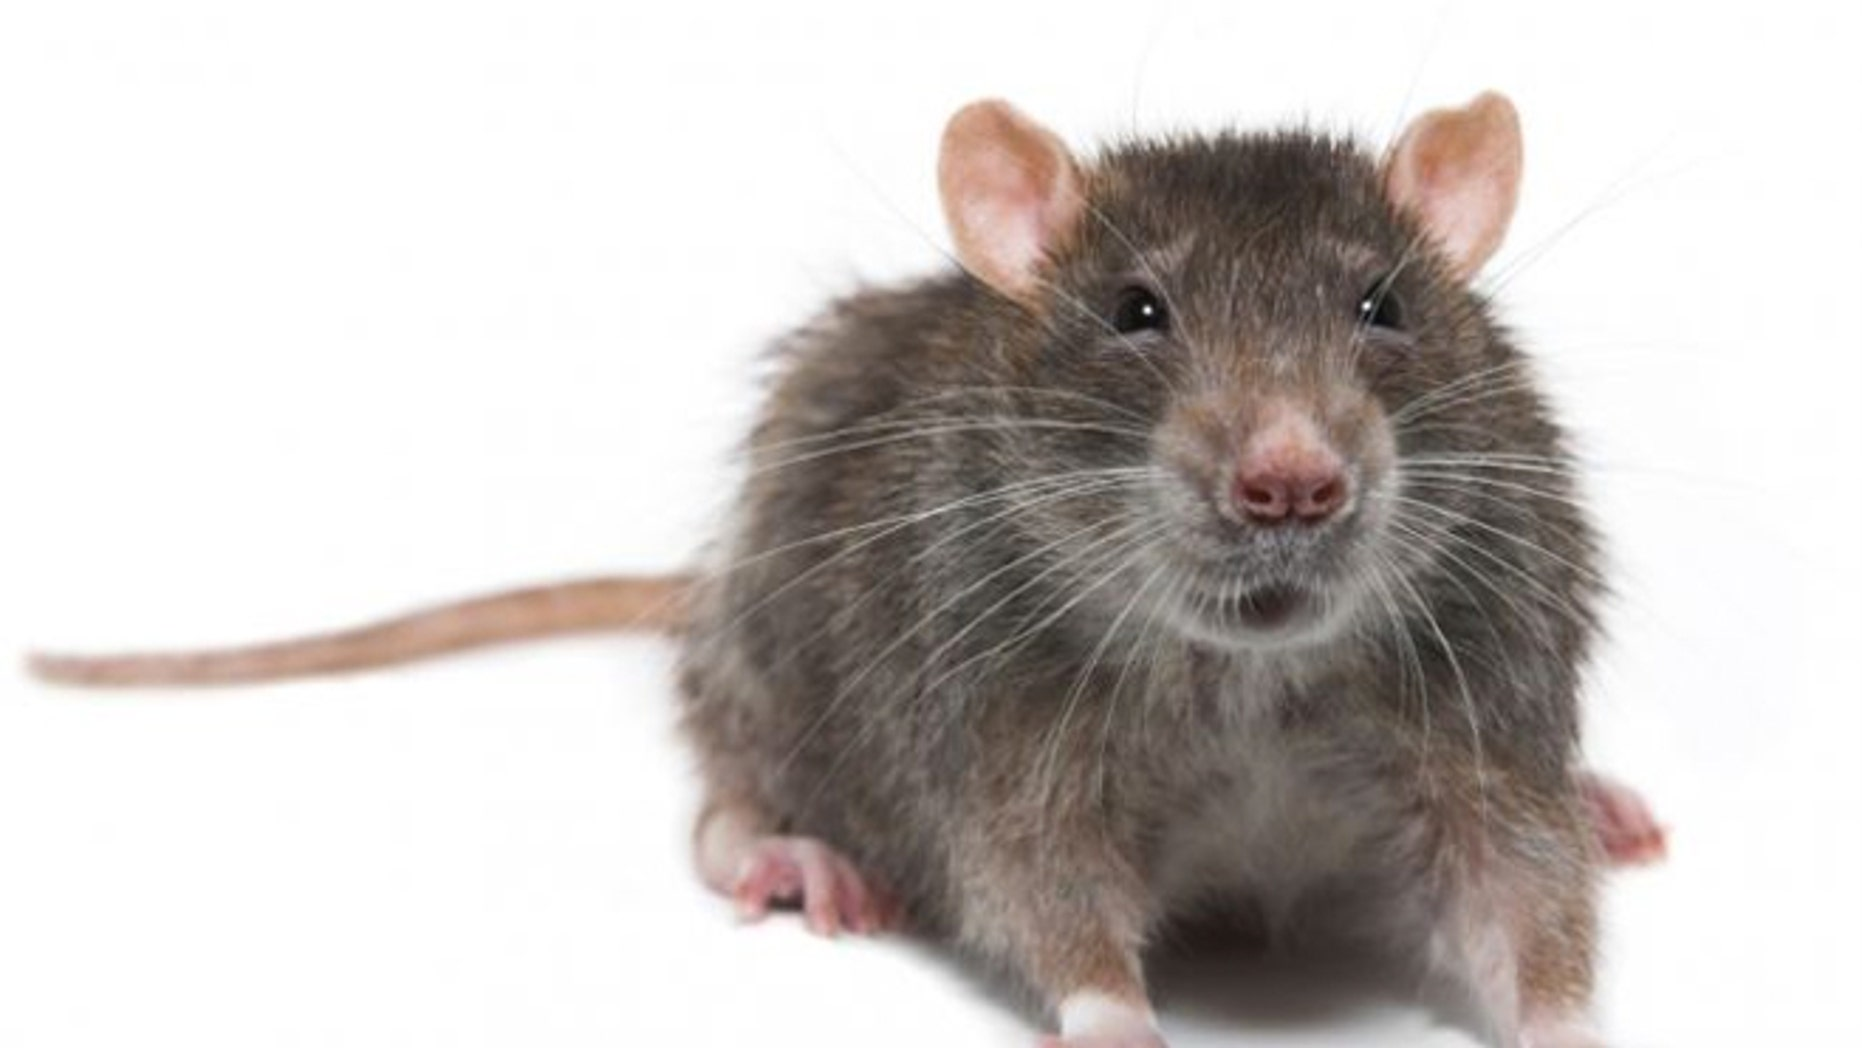 Customs claims to have found a rodent in a Chop't sandwich.